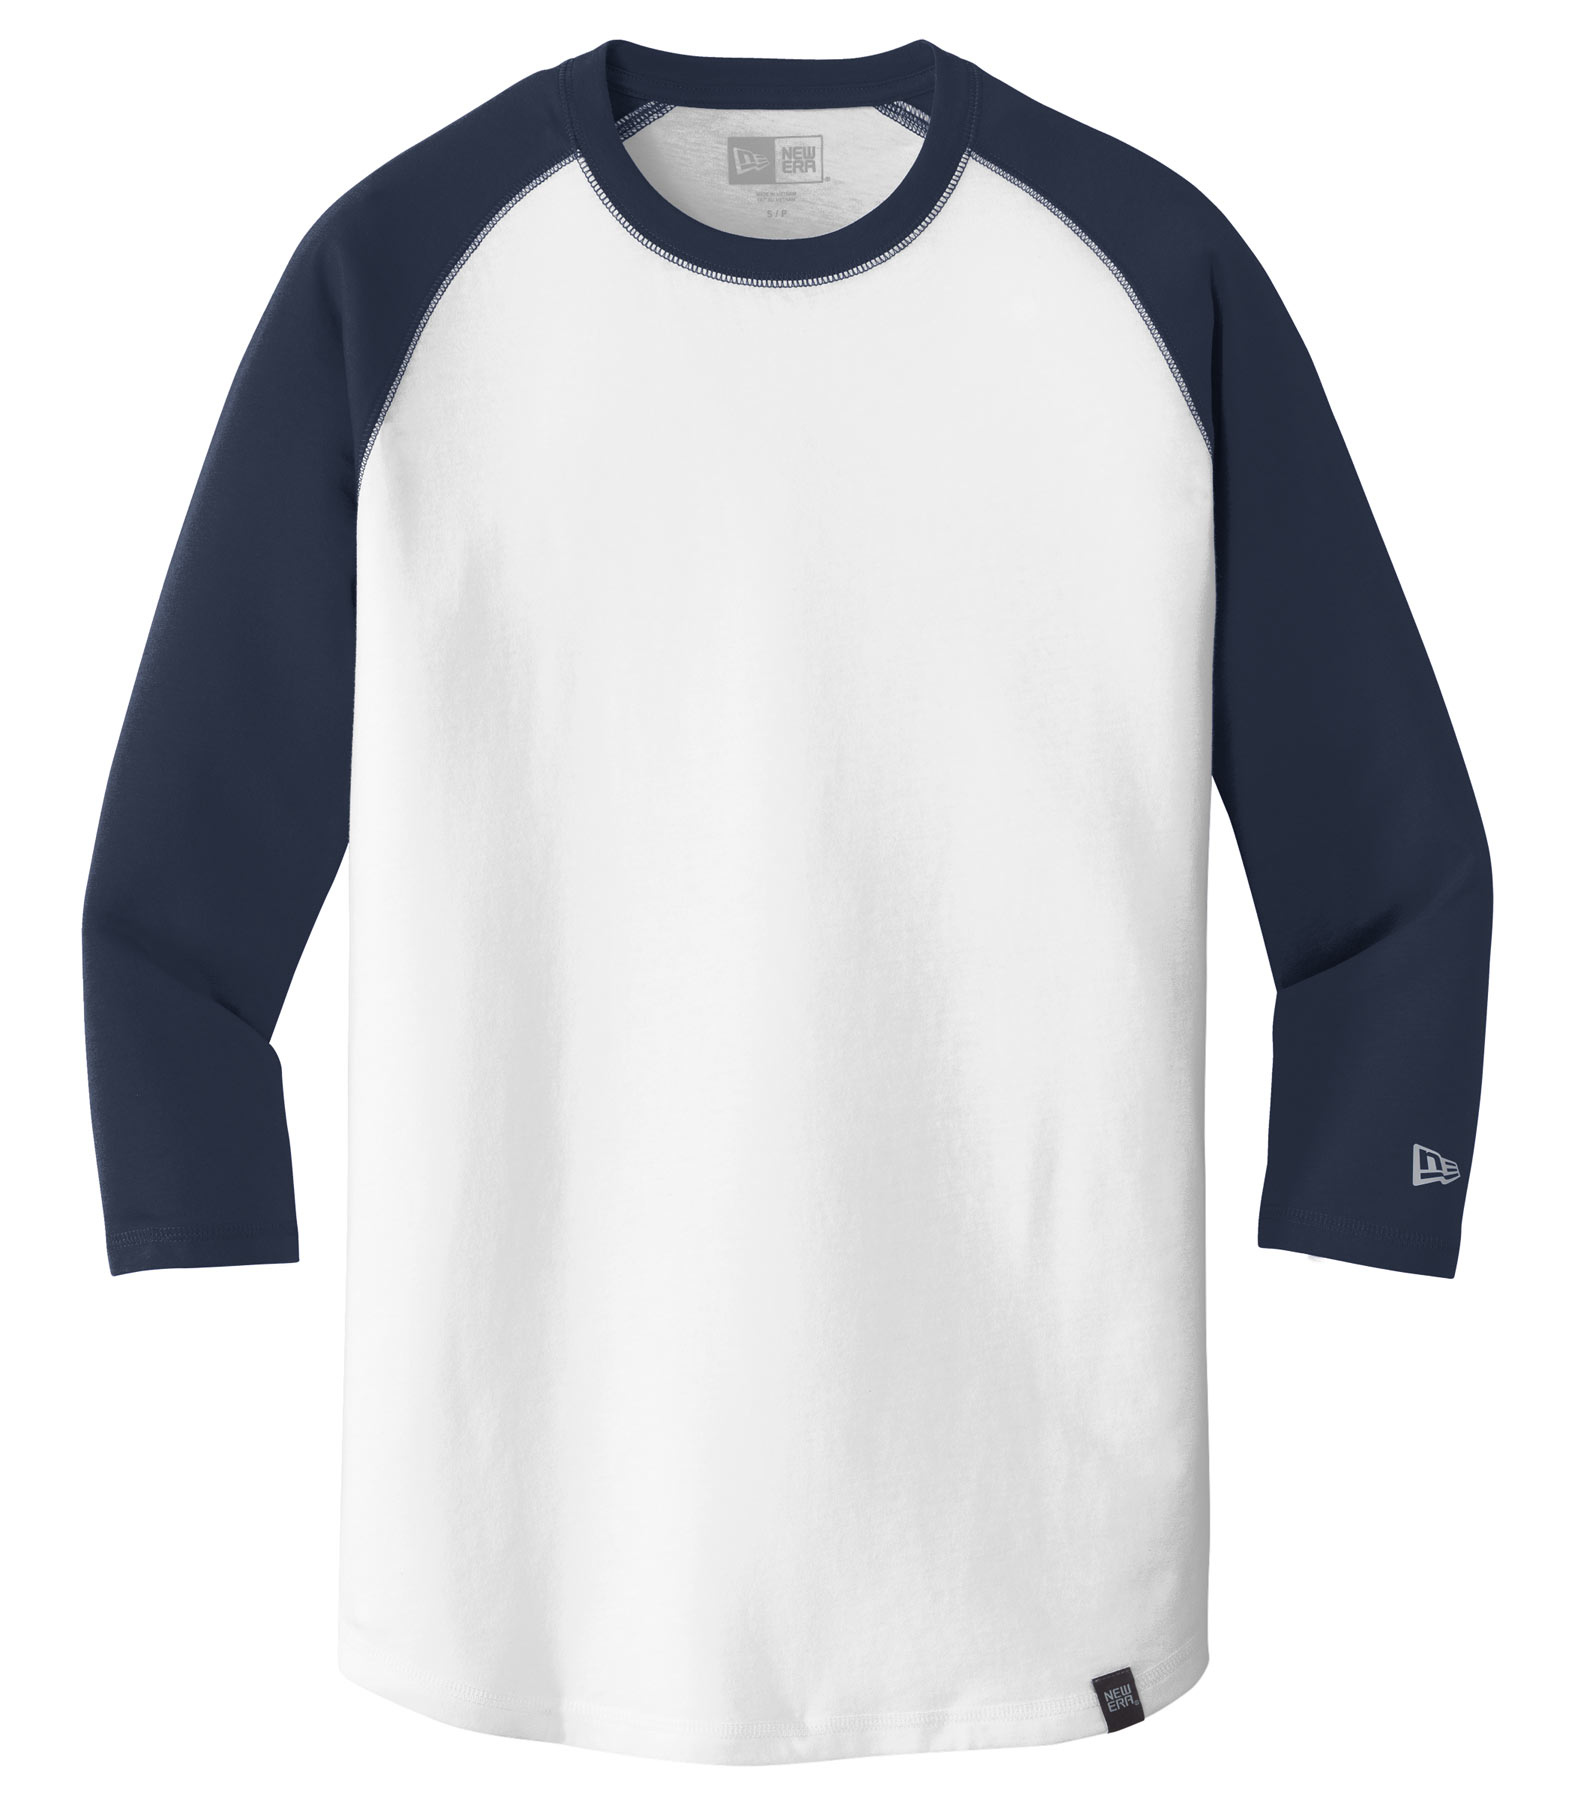 08778bc8215 Custom New Era® Mens Heritage Blend 3 4 Sleeve Baseball Raglan Tee